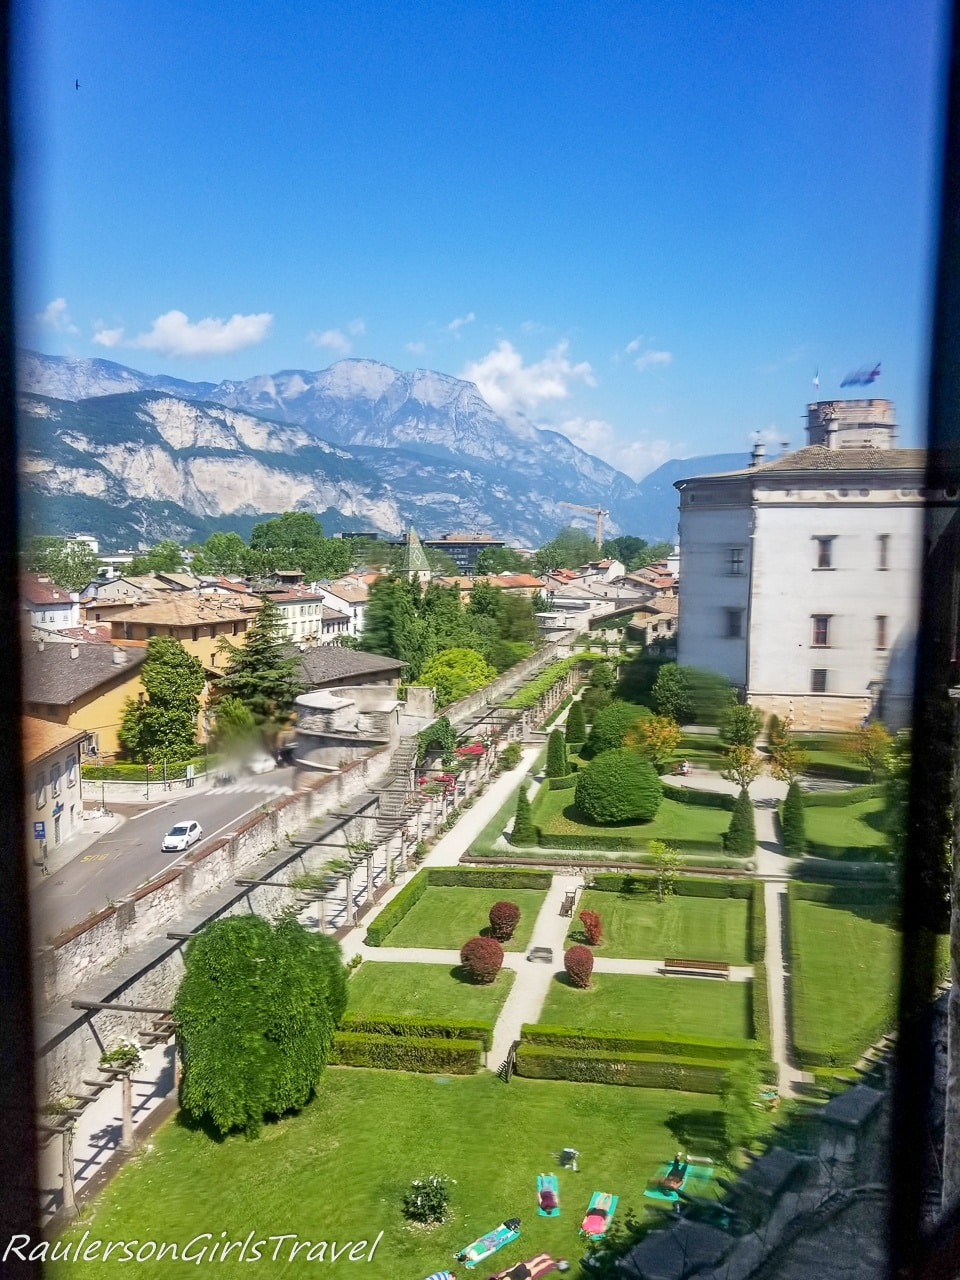 View of the Castle grounds from the hallway toward the Torre Aquila